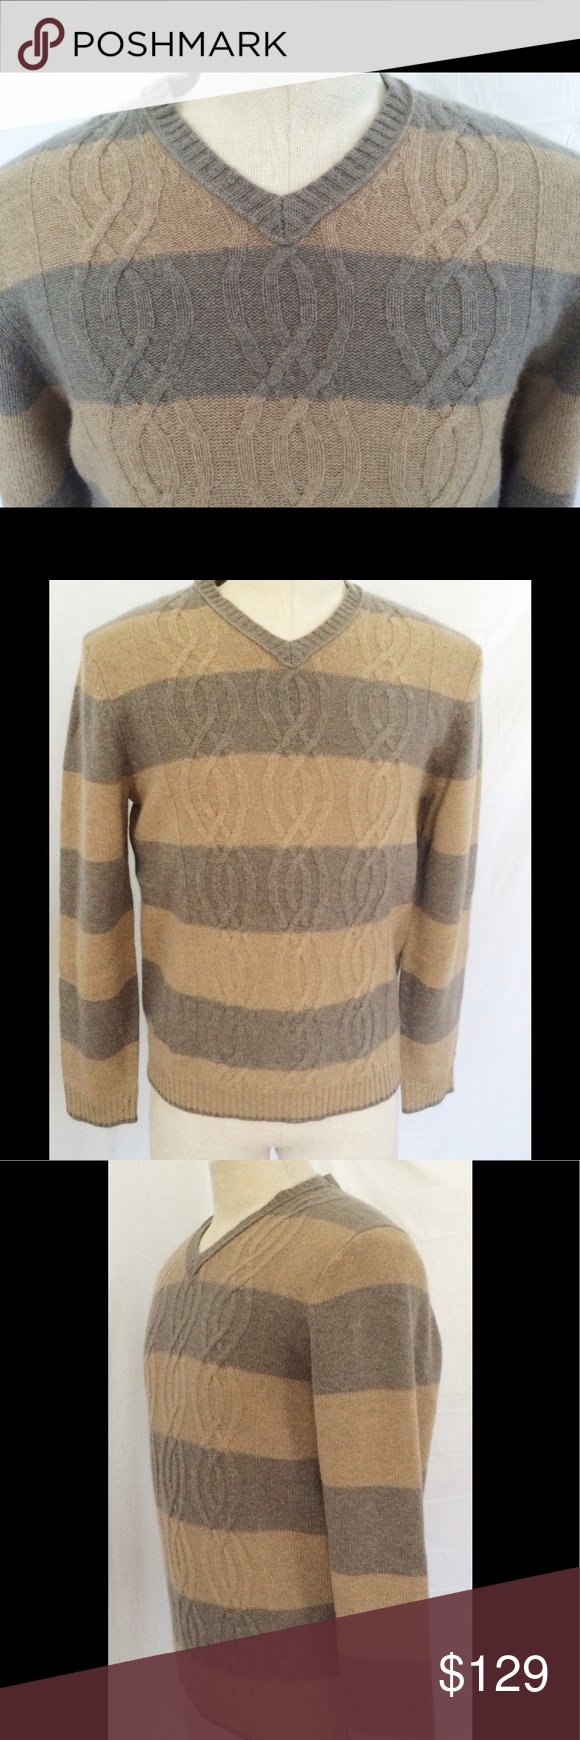 SOLD 🔥Black Brown 1826 Cashmere Striped Sweater M NWT | Cashmere ...